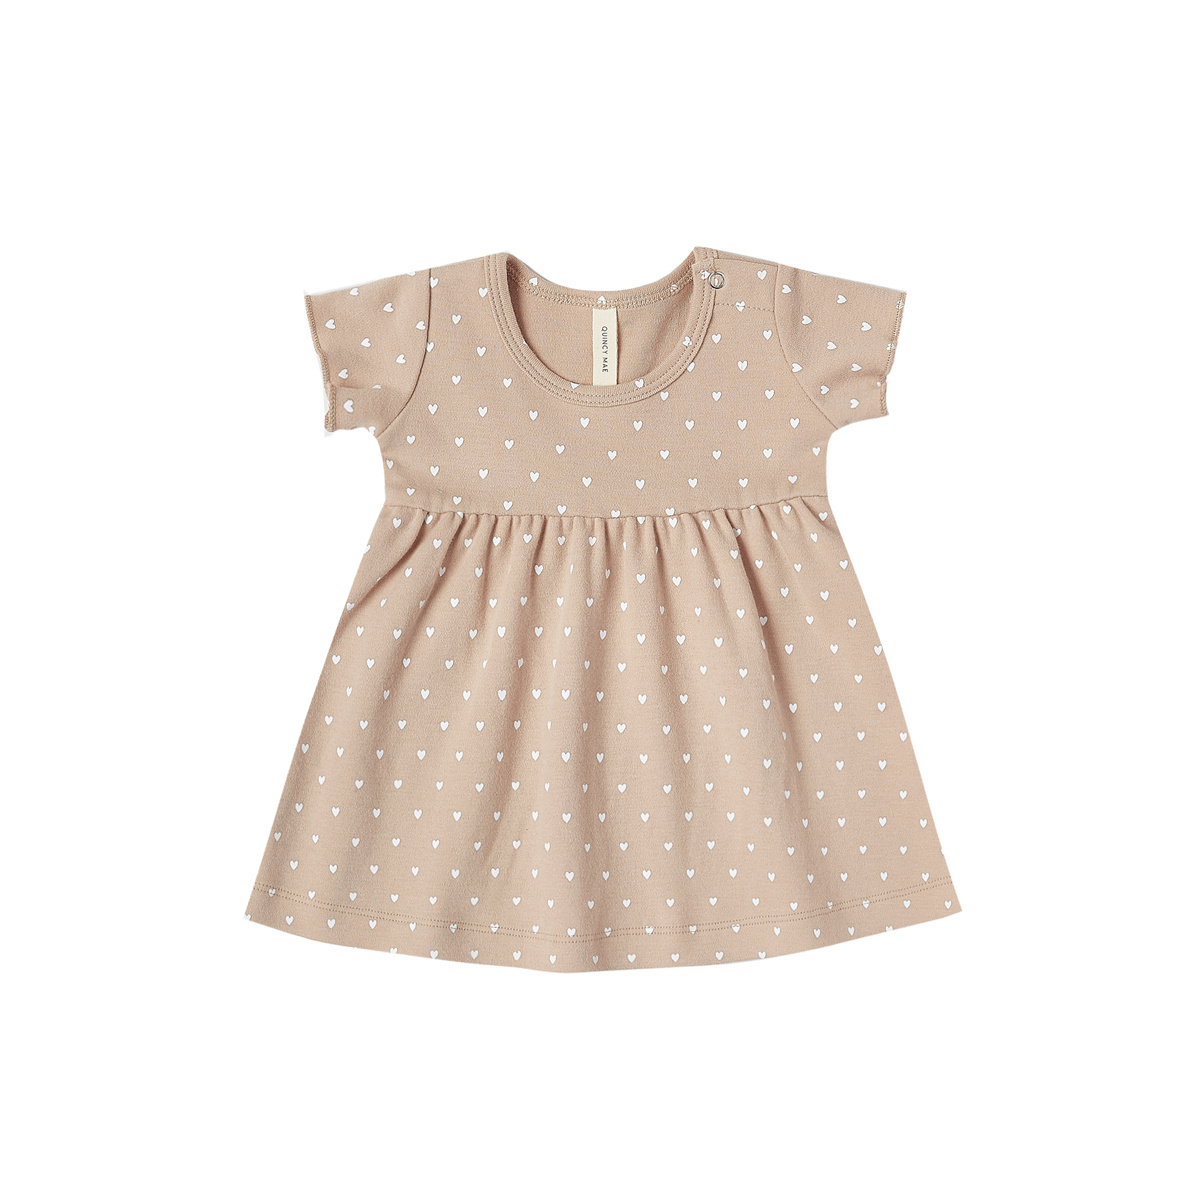 Quincy Mae Quincy Mae Short Sleeve Baby Dress